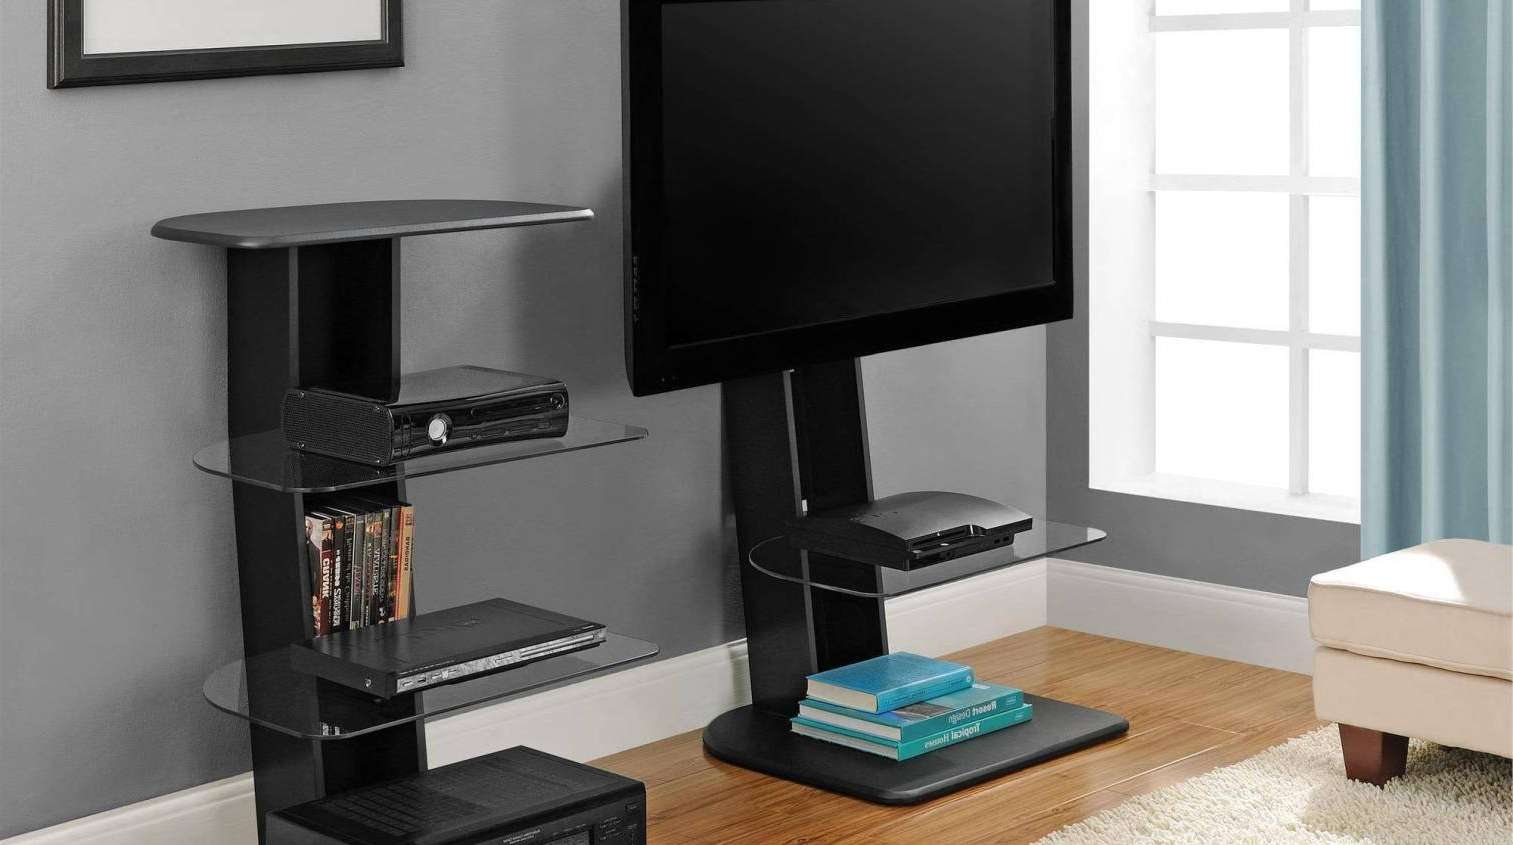 Tv : Exquisite 65 Inch Tv Stands With Integrated Mount Interesting For 65 Inch Tv Stands With Integrated Mount (View 6 of 15)